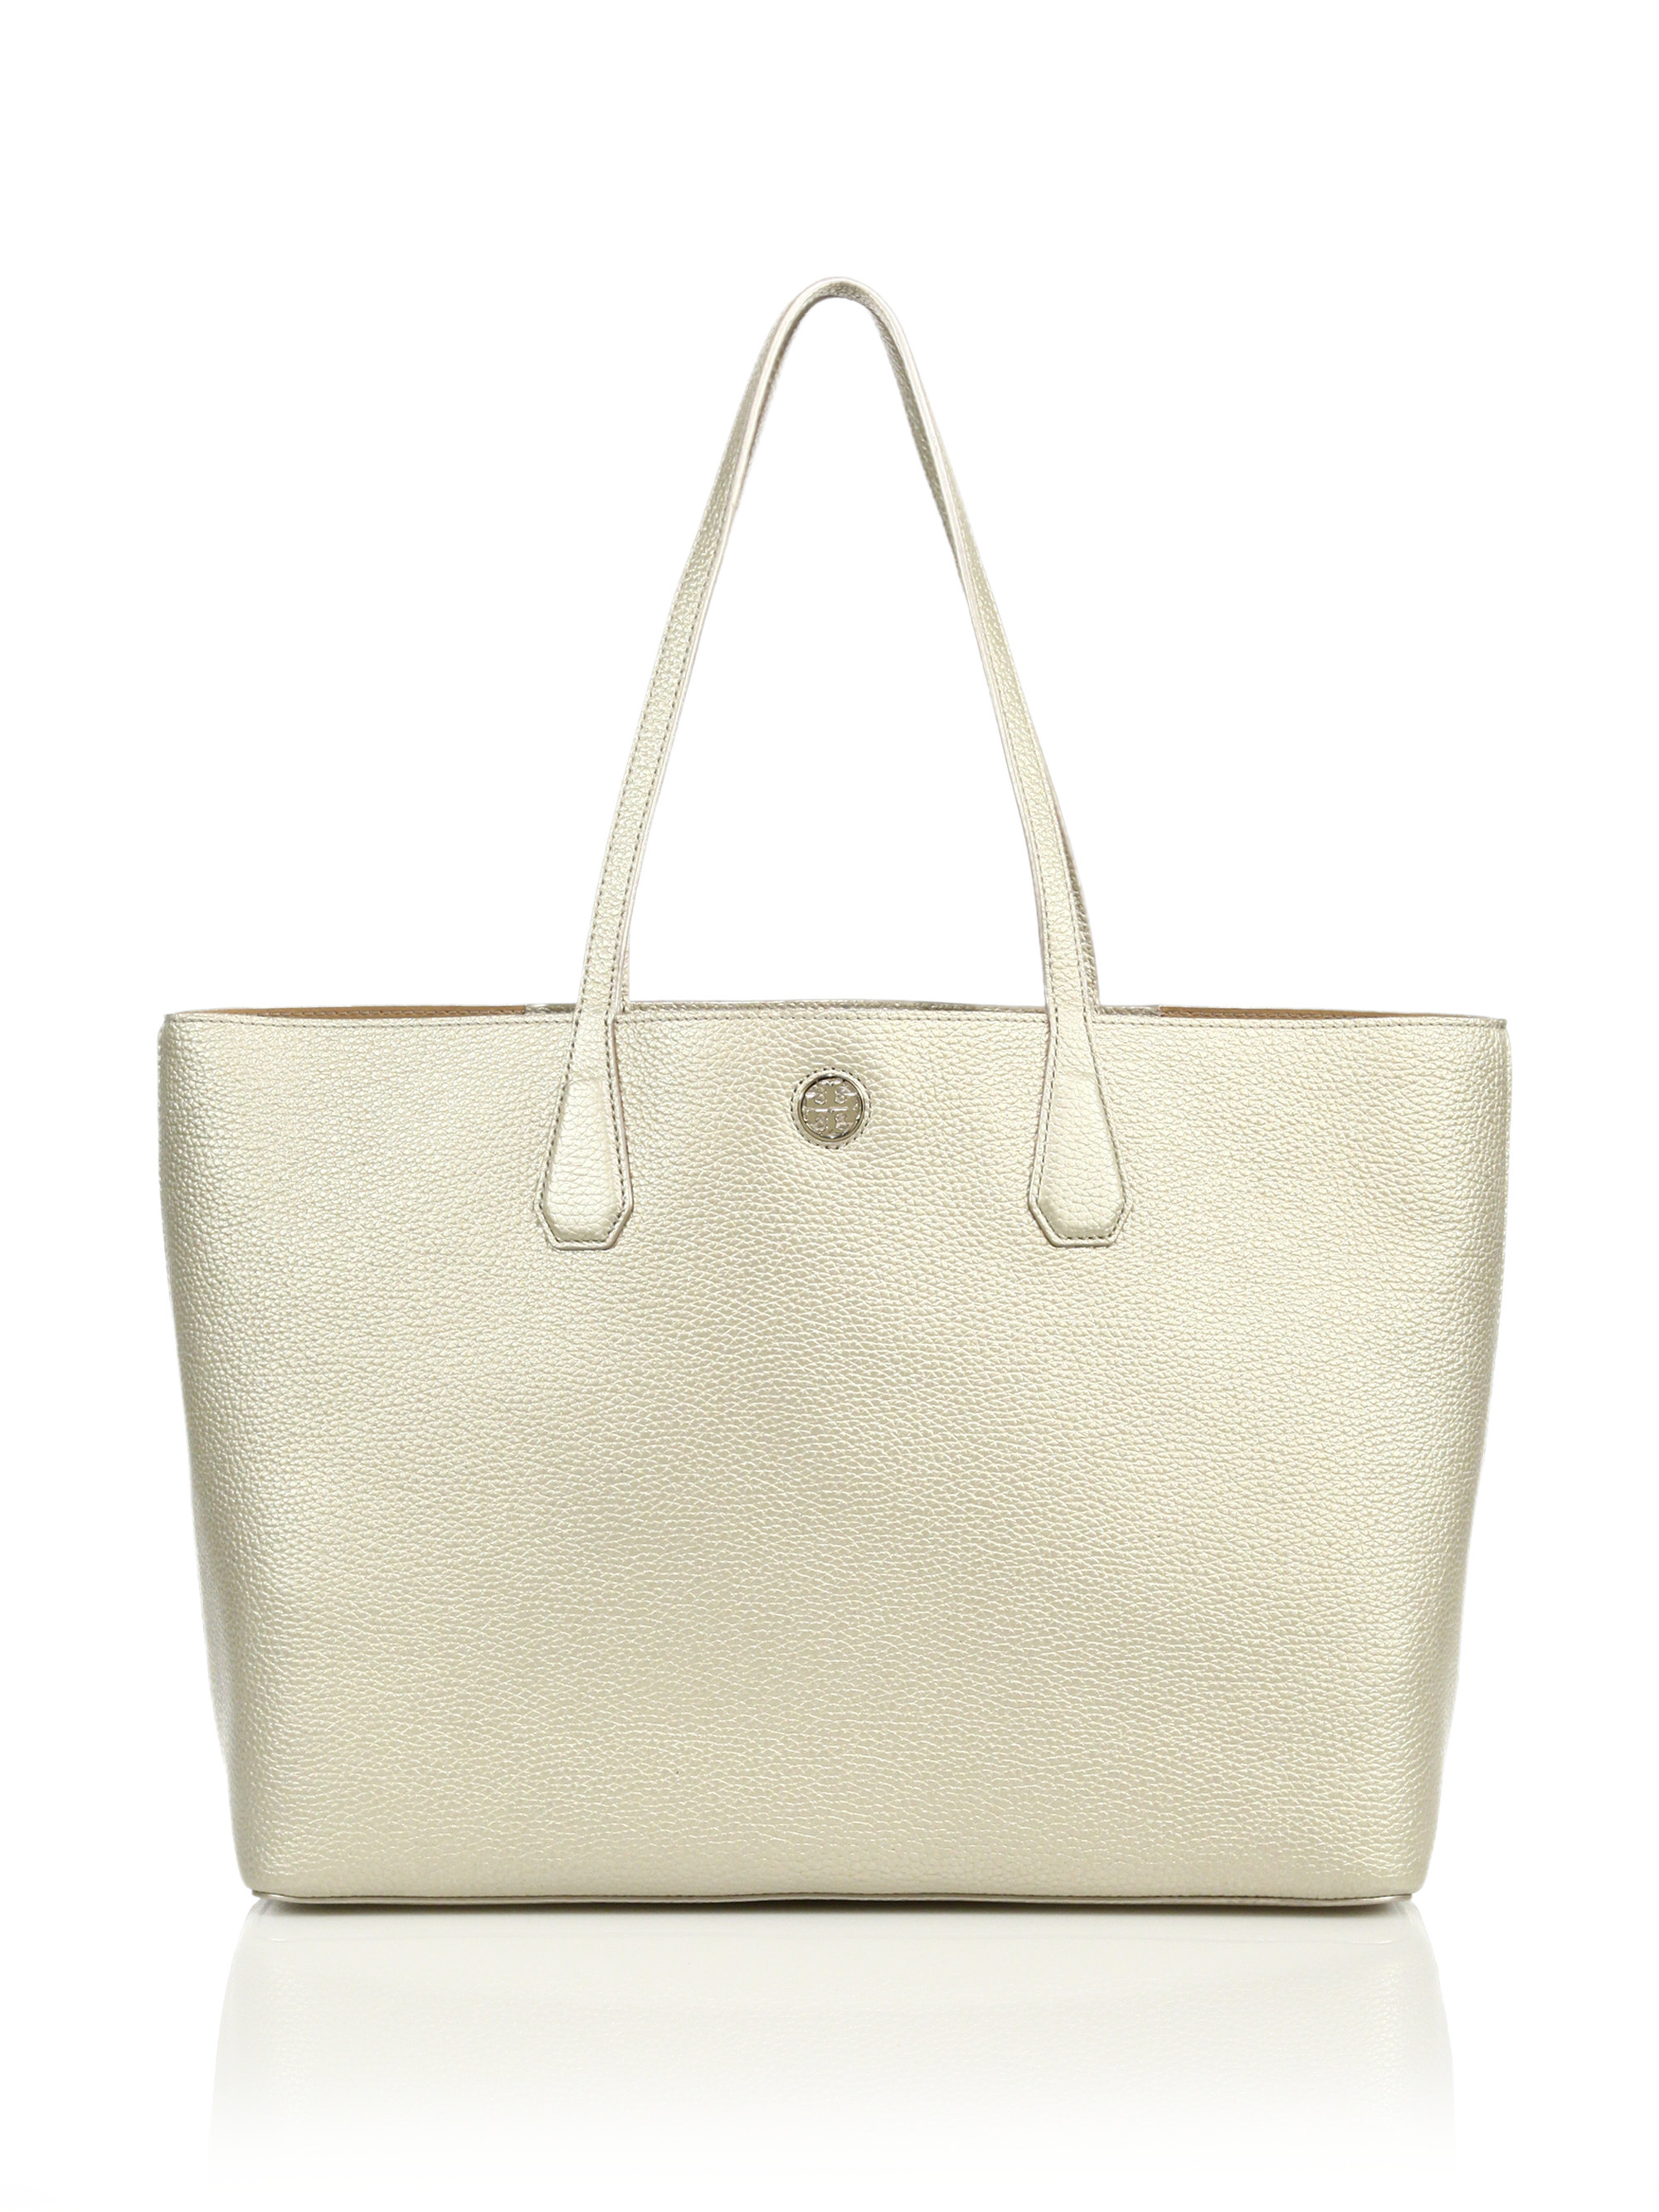 02af1208a24a ... official store lyst tory burch perry metallic leather tote in metallic  88ef1 31b35